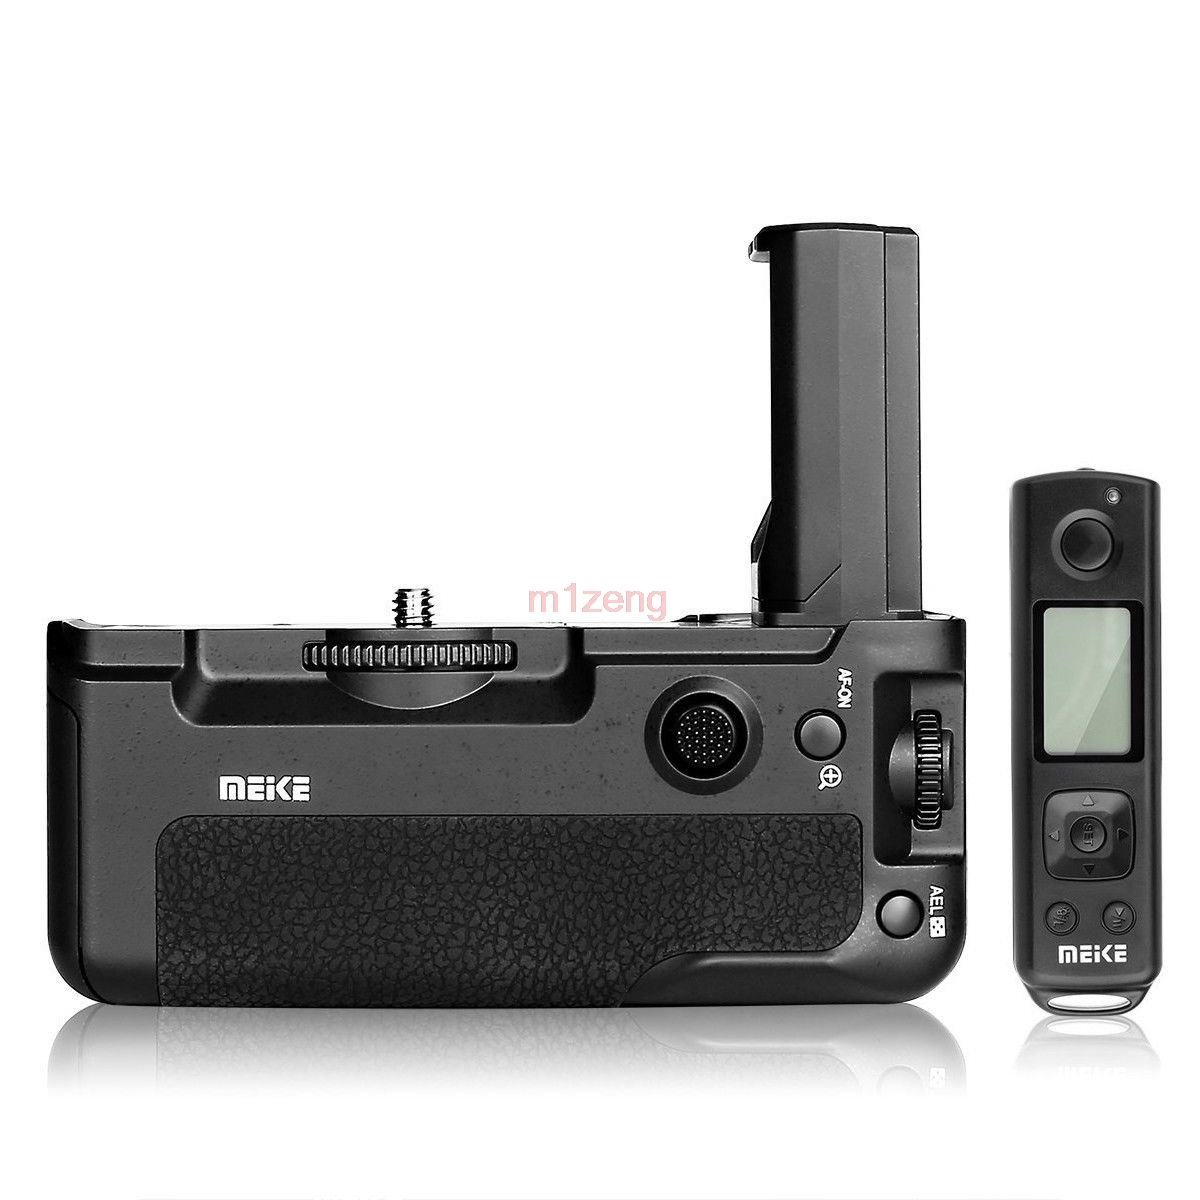 pro Vertical Battery Grip Pack hand grip Holder with 2.4G Wireless Remote Control for Sony A9 A7R III camera meike vertical battery grip hand pack 2 4g wireless remote control for nikon d500 en el15 dslr camera mb d17